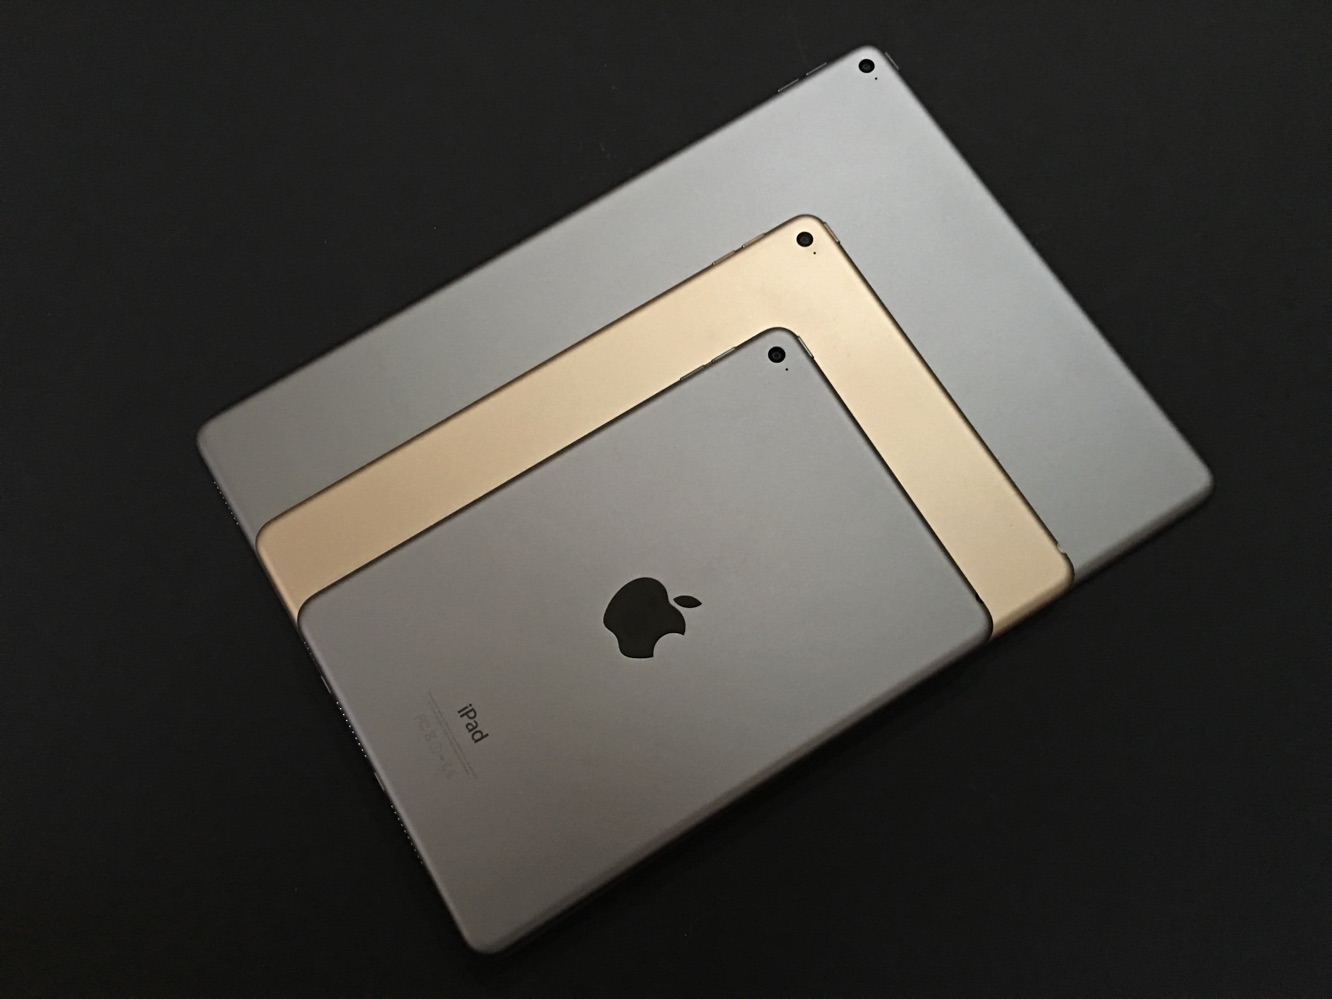 News: KGI?s Kuo still predicts three iPad sizes, including a high end midsize model